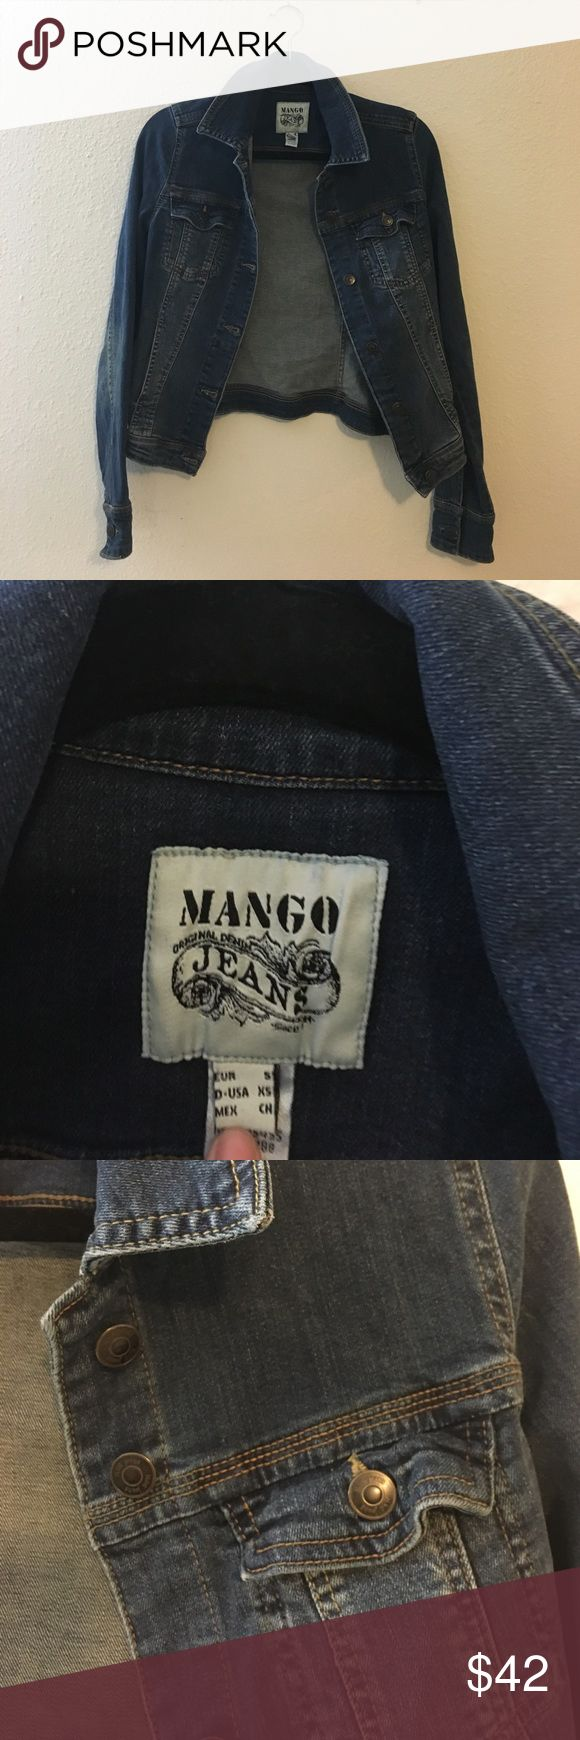 Mango Denim Jacket Warm and comfortable fitted Denim Jacket ∙ worn a few times ∙ great condition Mango Jackets & Coats Jean Jackets